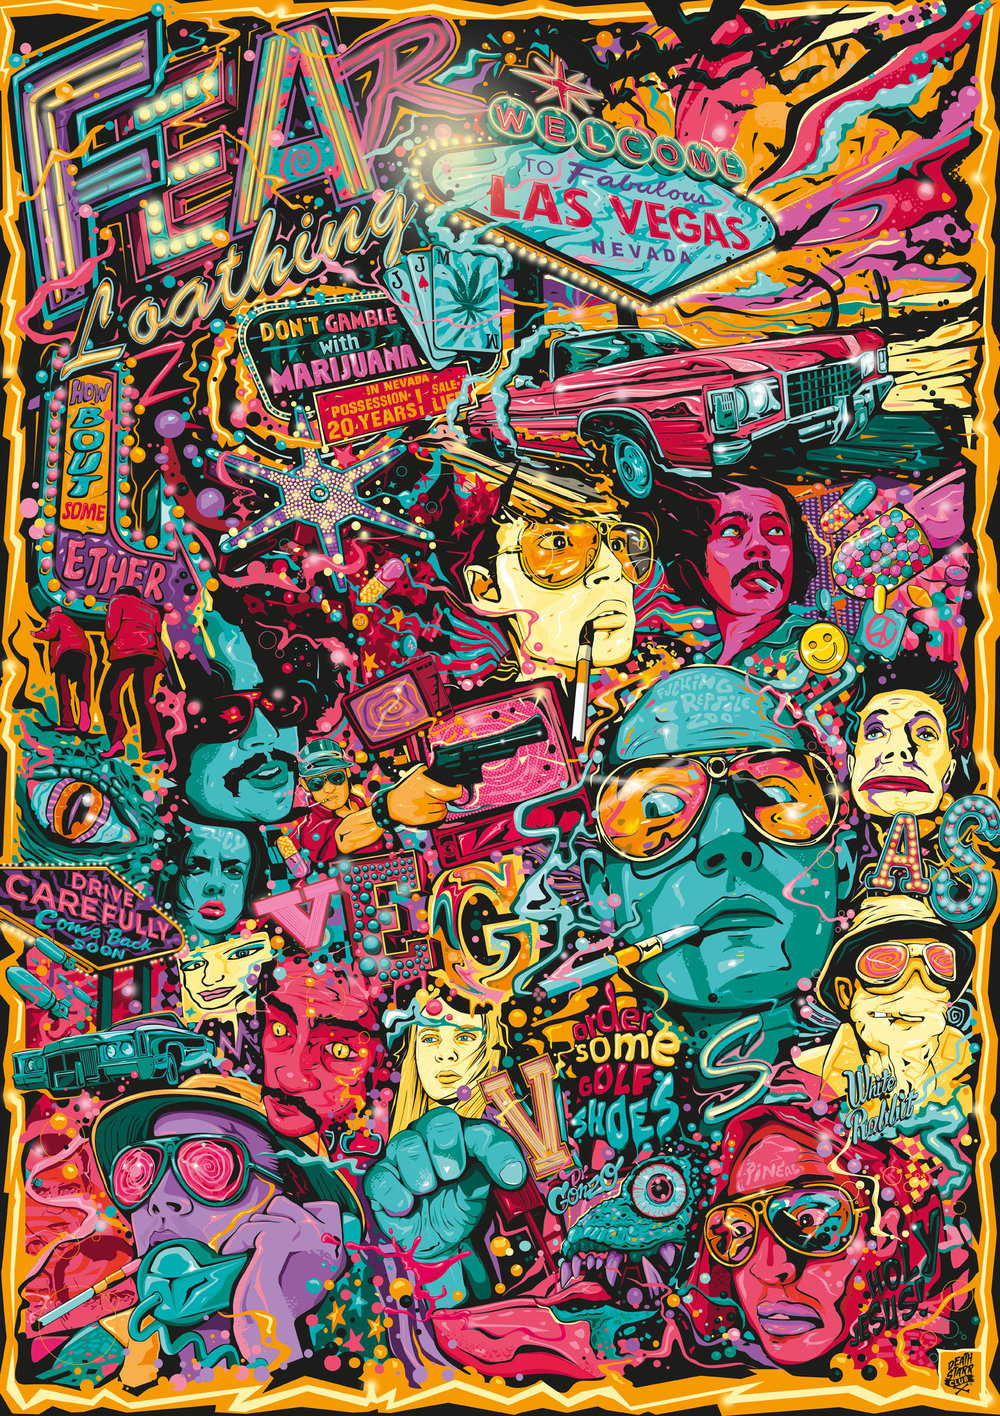 fear and loathing poster.jpg